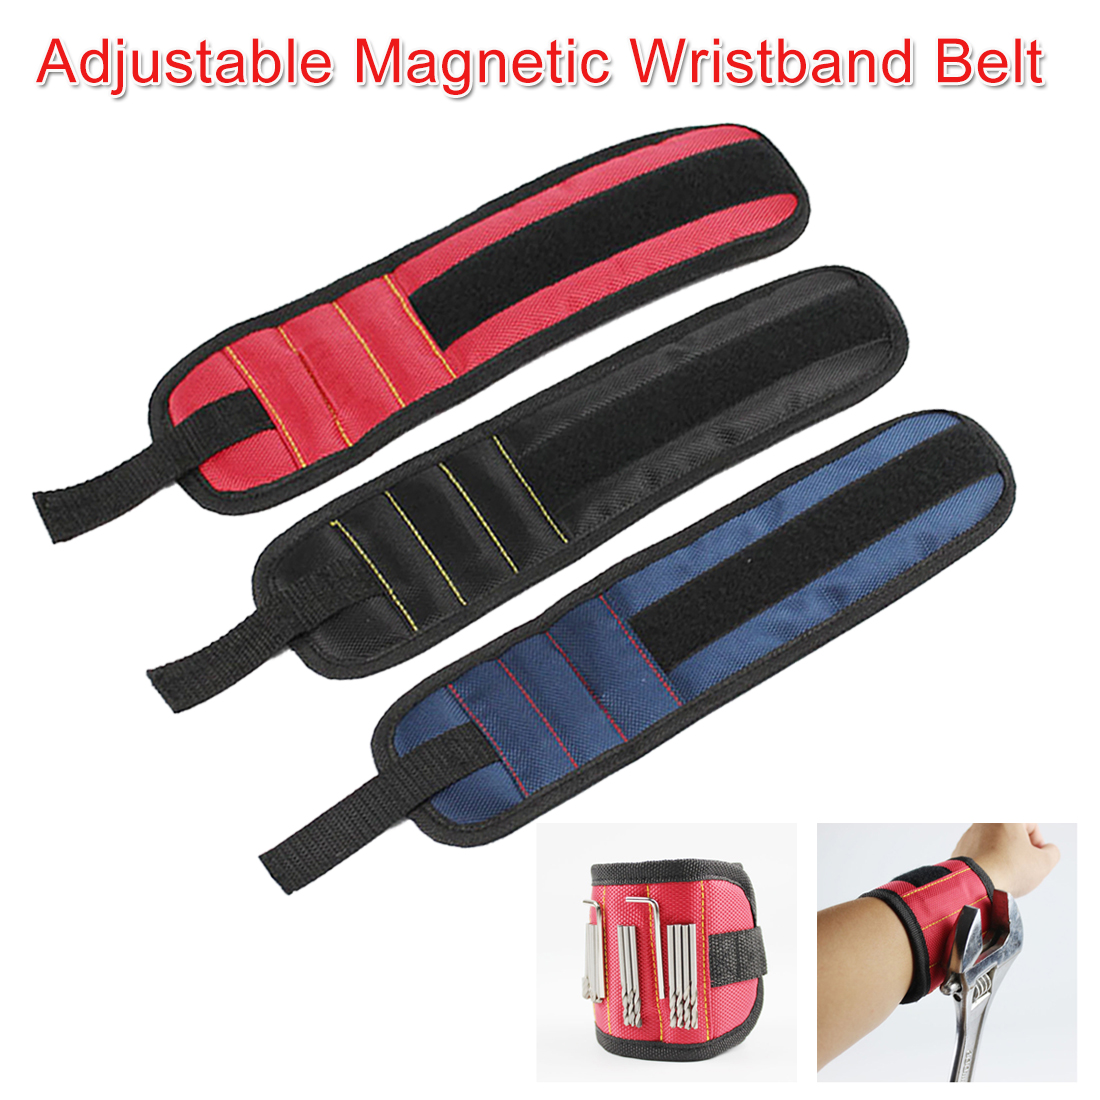 Magnetic Tool Wristband Portable Electrician Wrist Tool For Holding Screw Nails Drill Bits Wrench Hammer With 3 Magnet Home Tool